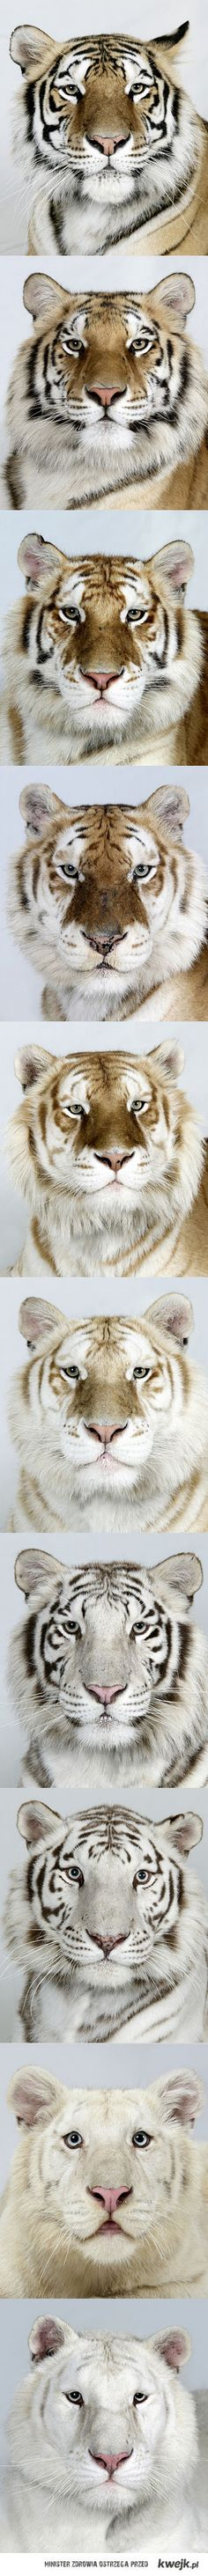 Tigers - http://www.guardian.co.uk/environment/gallery/2009/apr/15/bengal-tigers-faces-photography